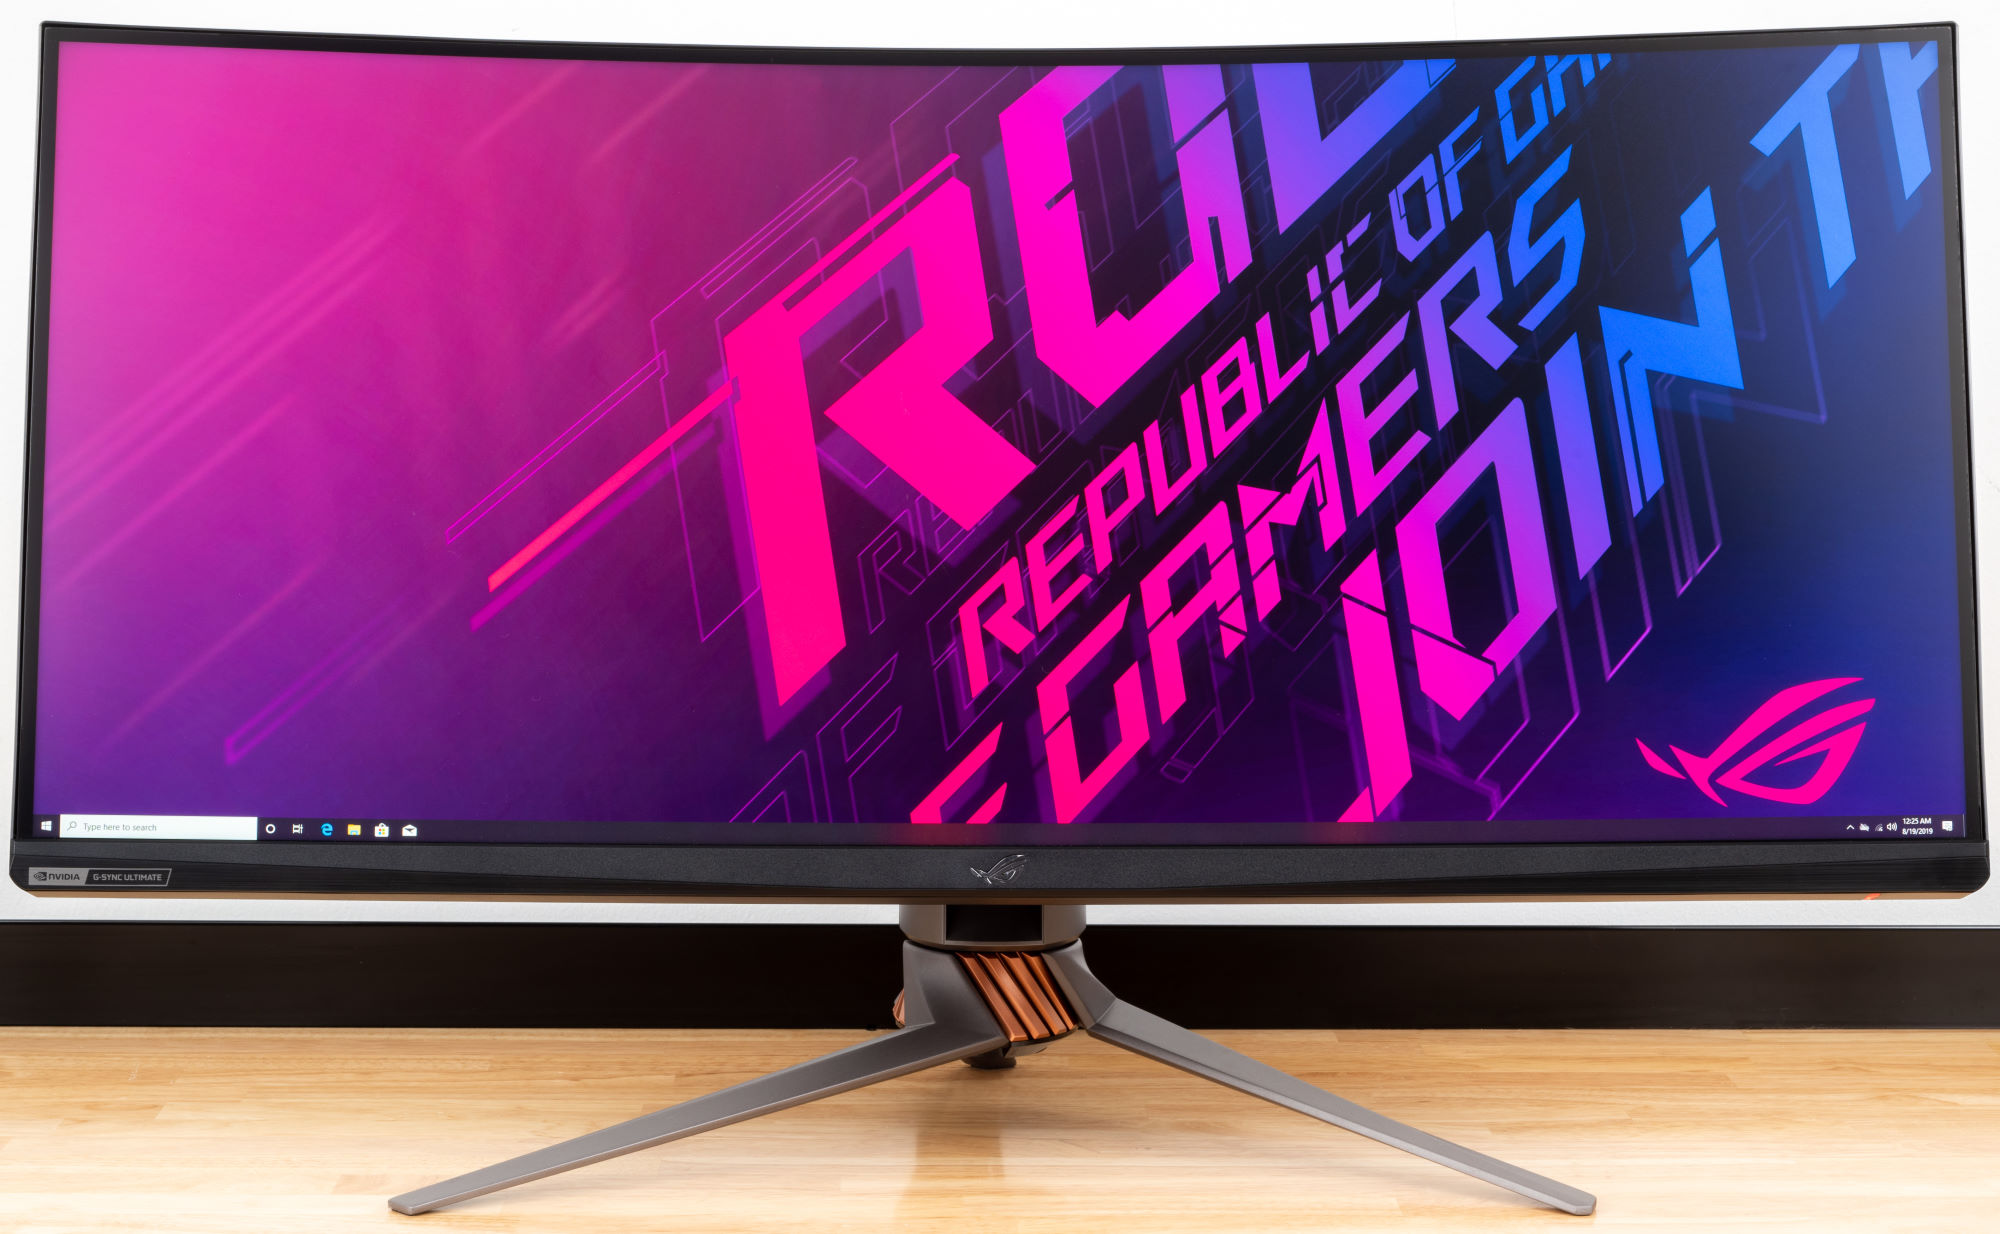 The ROG Swift PG35VQ elevates every game with an ultrawide